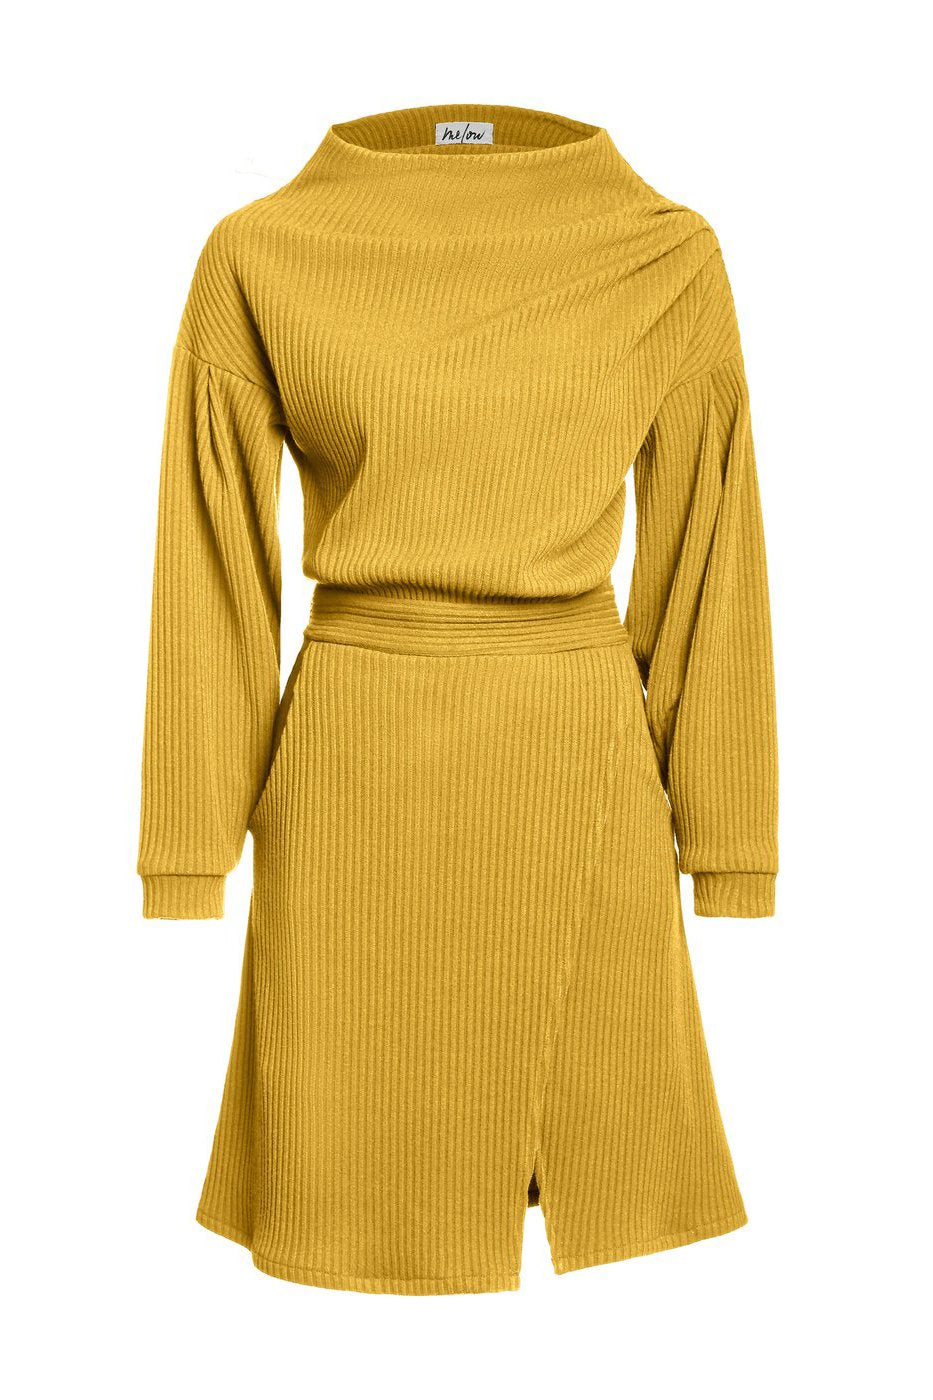 Zodiak Dress in Mustard from Melow by Melissa Bolduc, avaialbe in sizes xs to xl